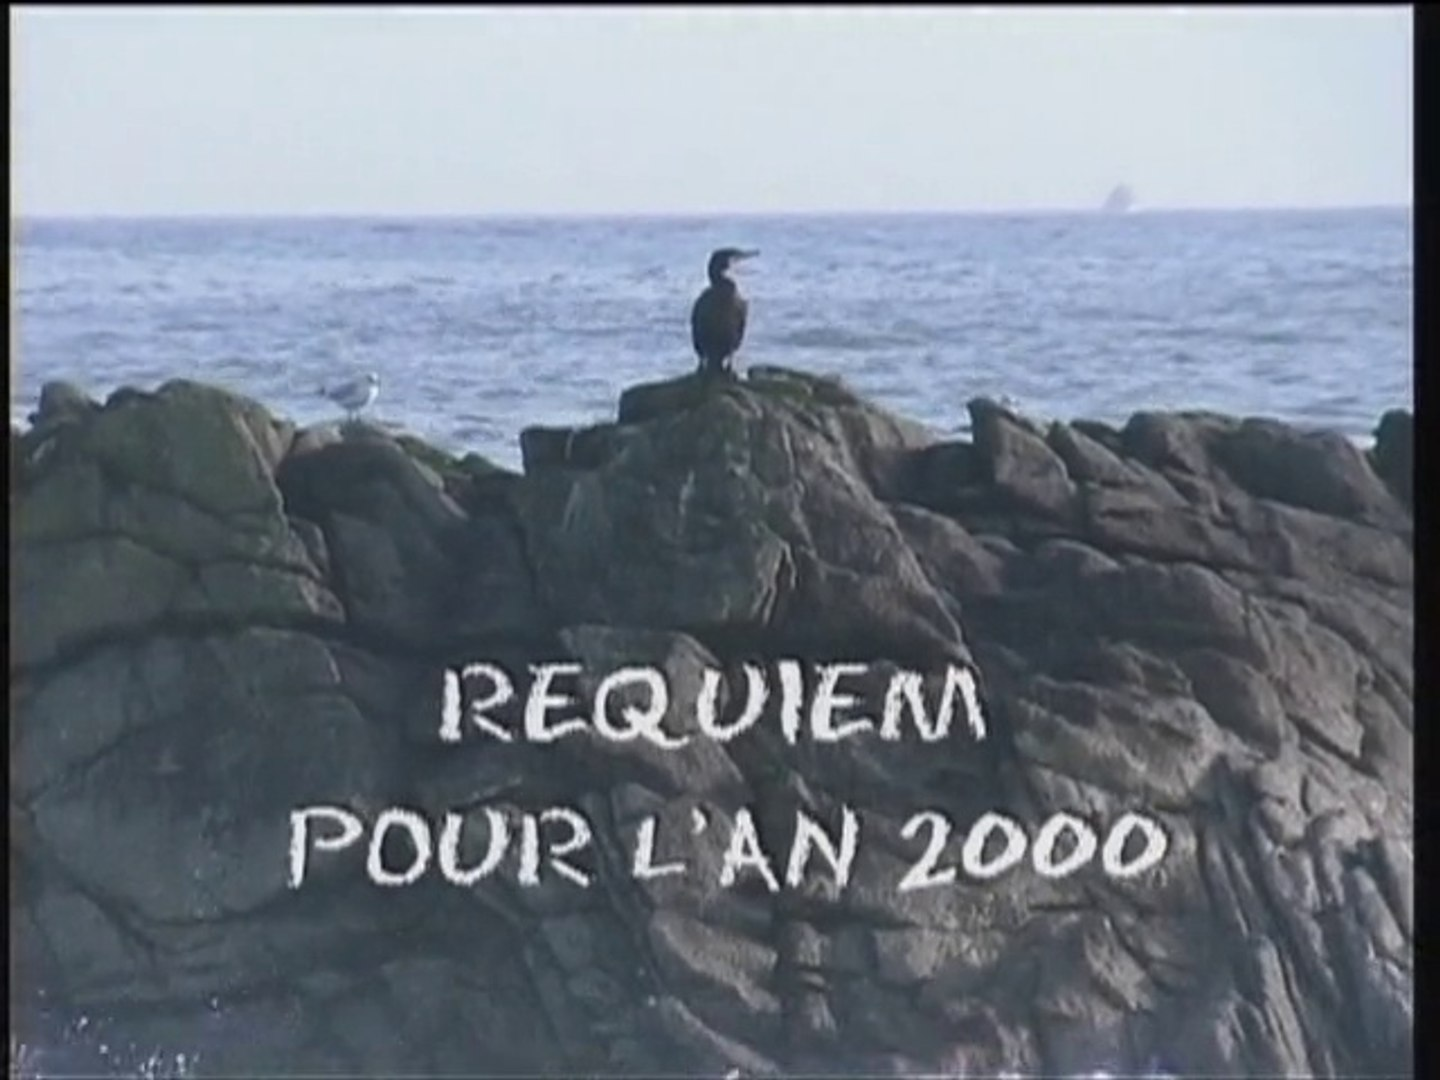 Erika, requiem pour l'an 2000 * Trigone Production Lorient 2000